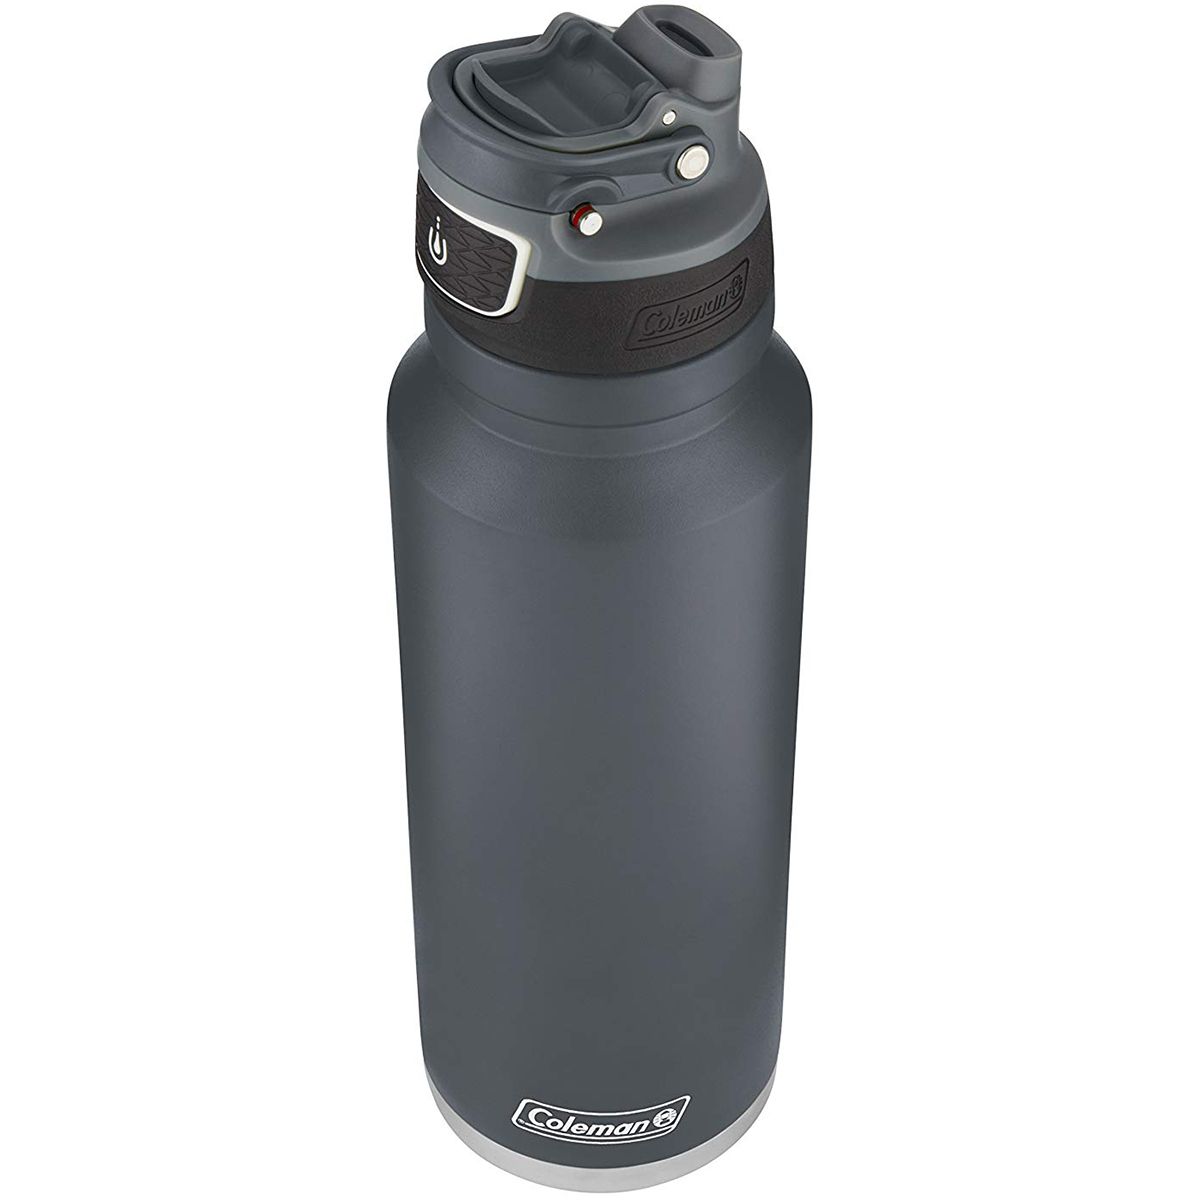 thumbnail 24 - Coleman 40 oz. Free Flow Autoseal Insulated Stainless Steel Water Bottle